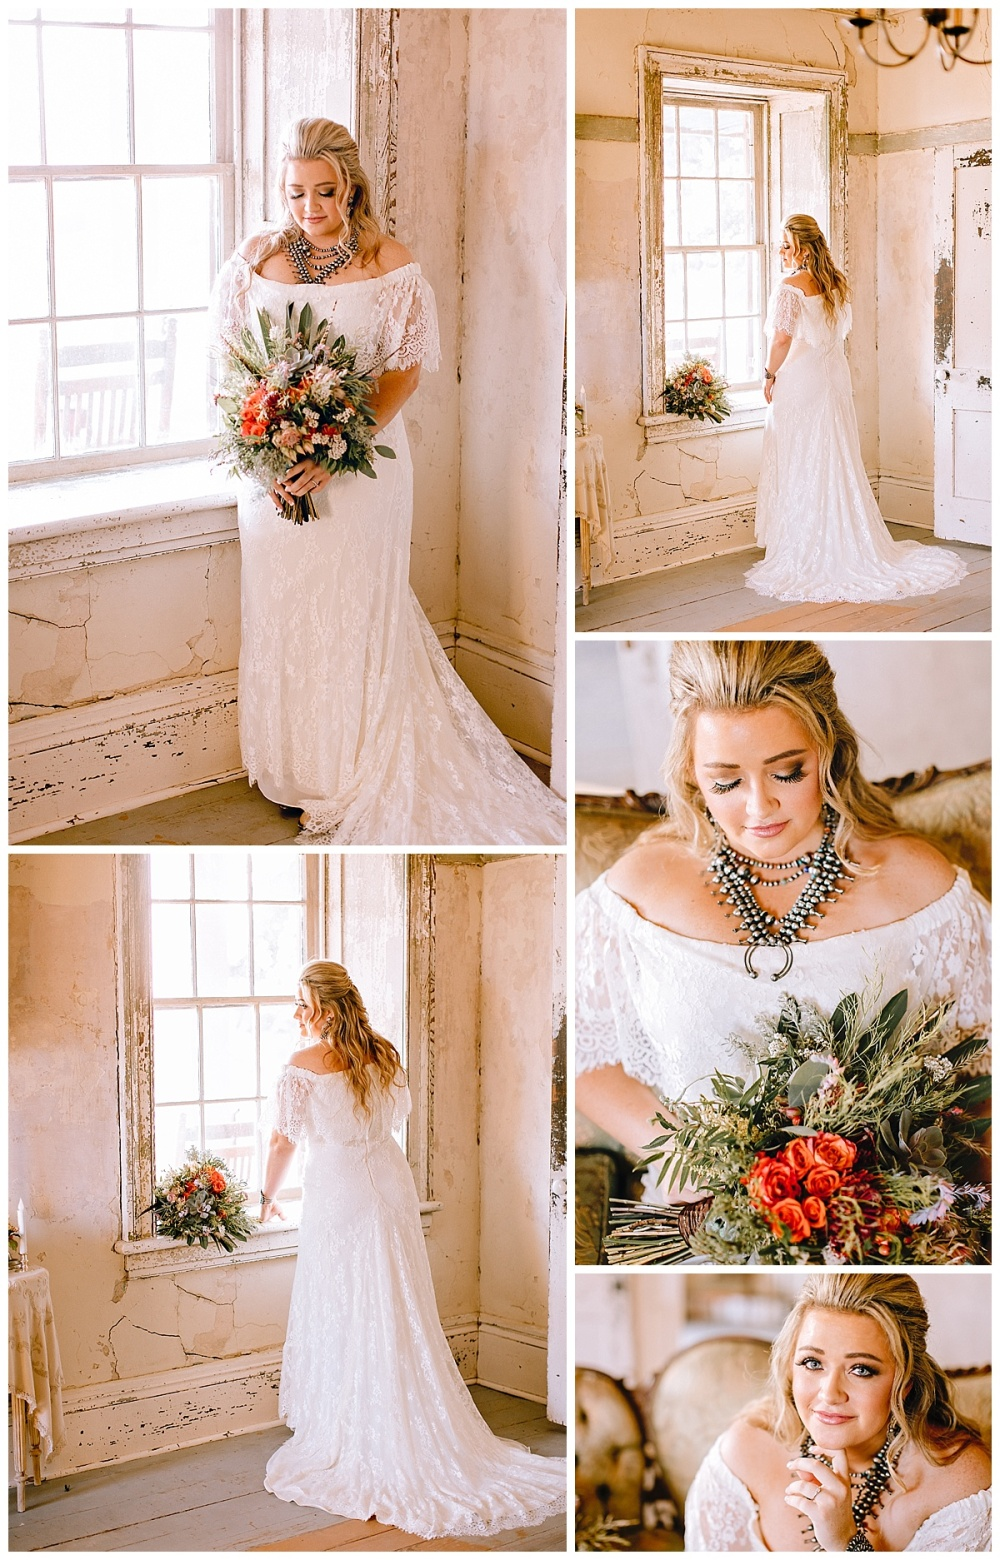 Carly-Barton-Photography-Whitehall-Polley-Mansion-Sutherland-Springs-Texas-Wedding-Bridals-Caitlin_0002.jpg